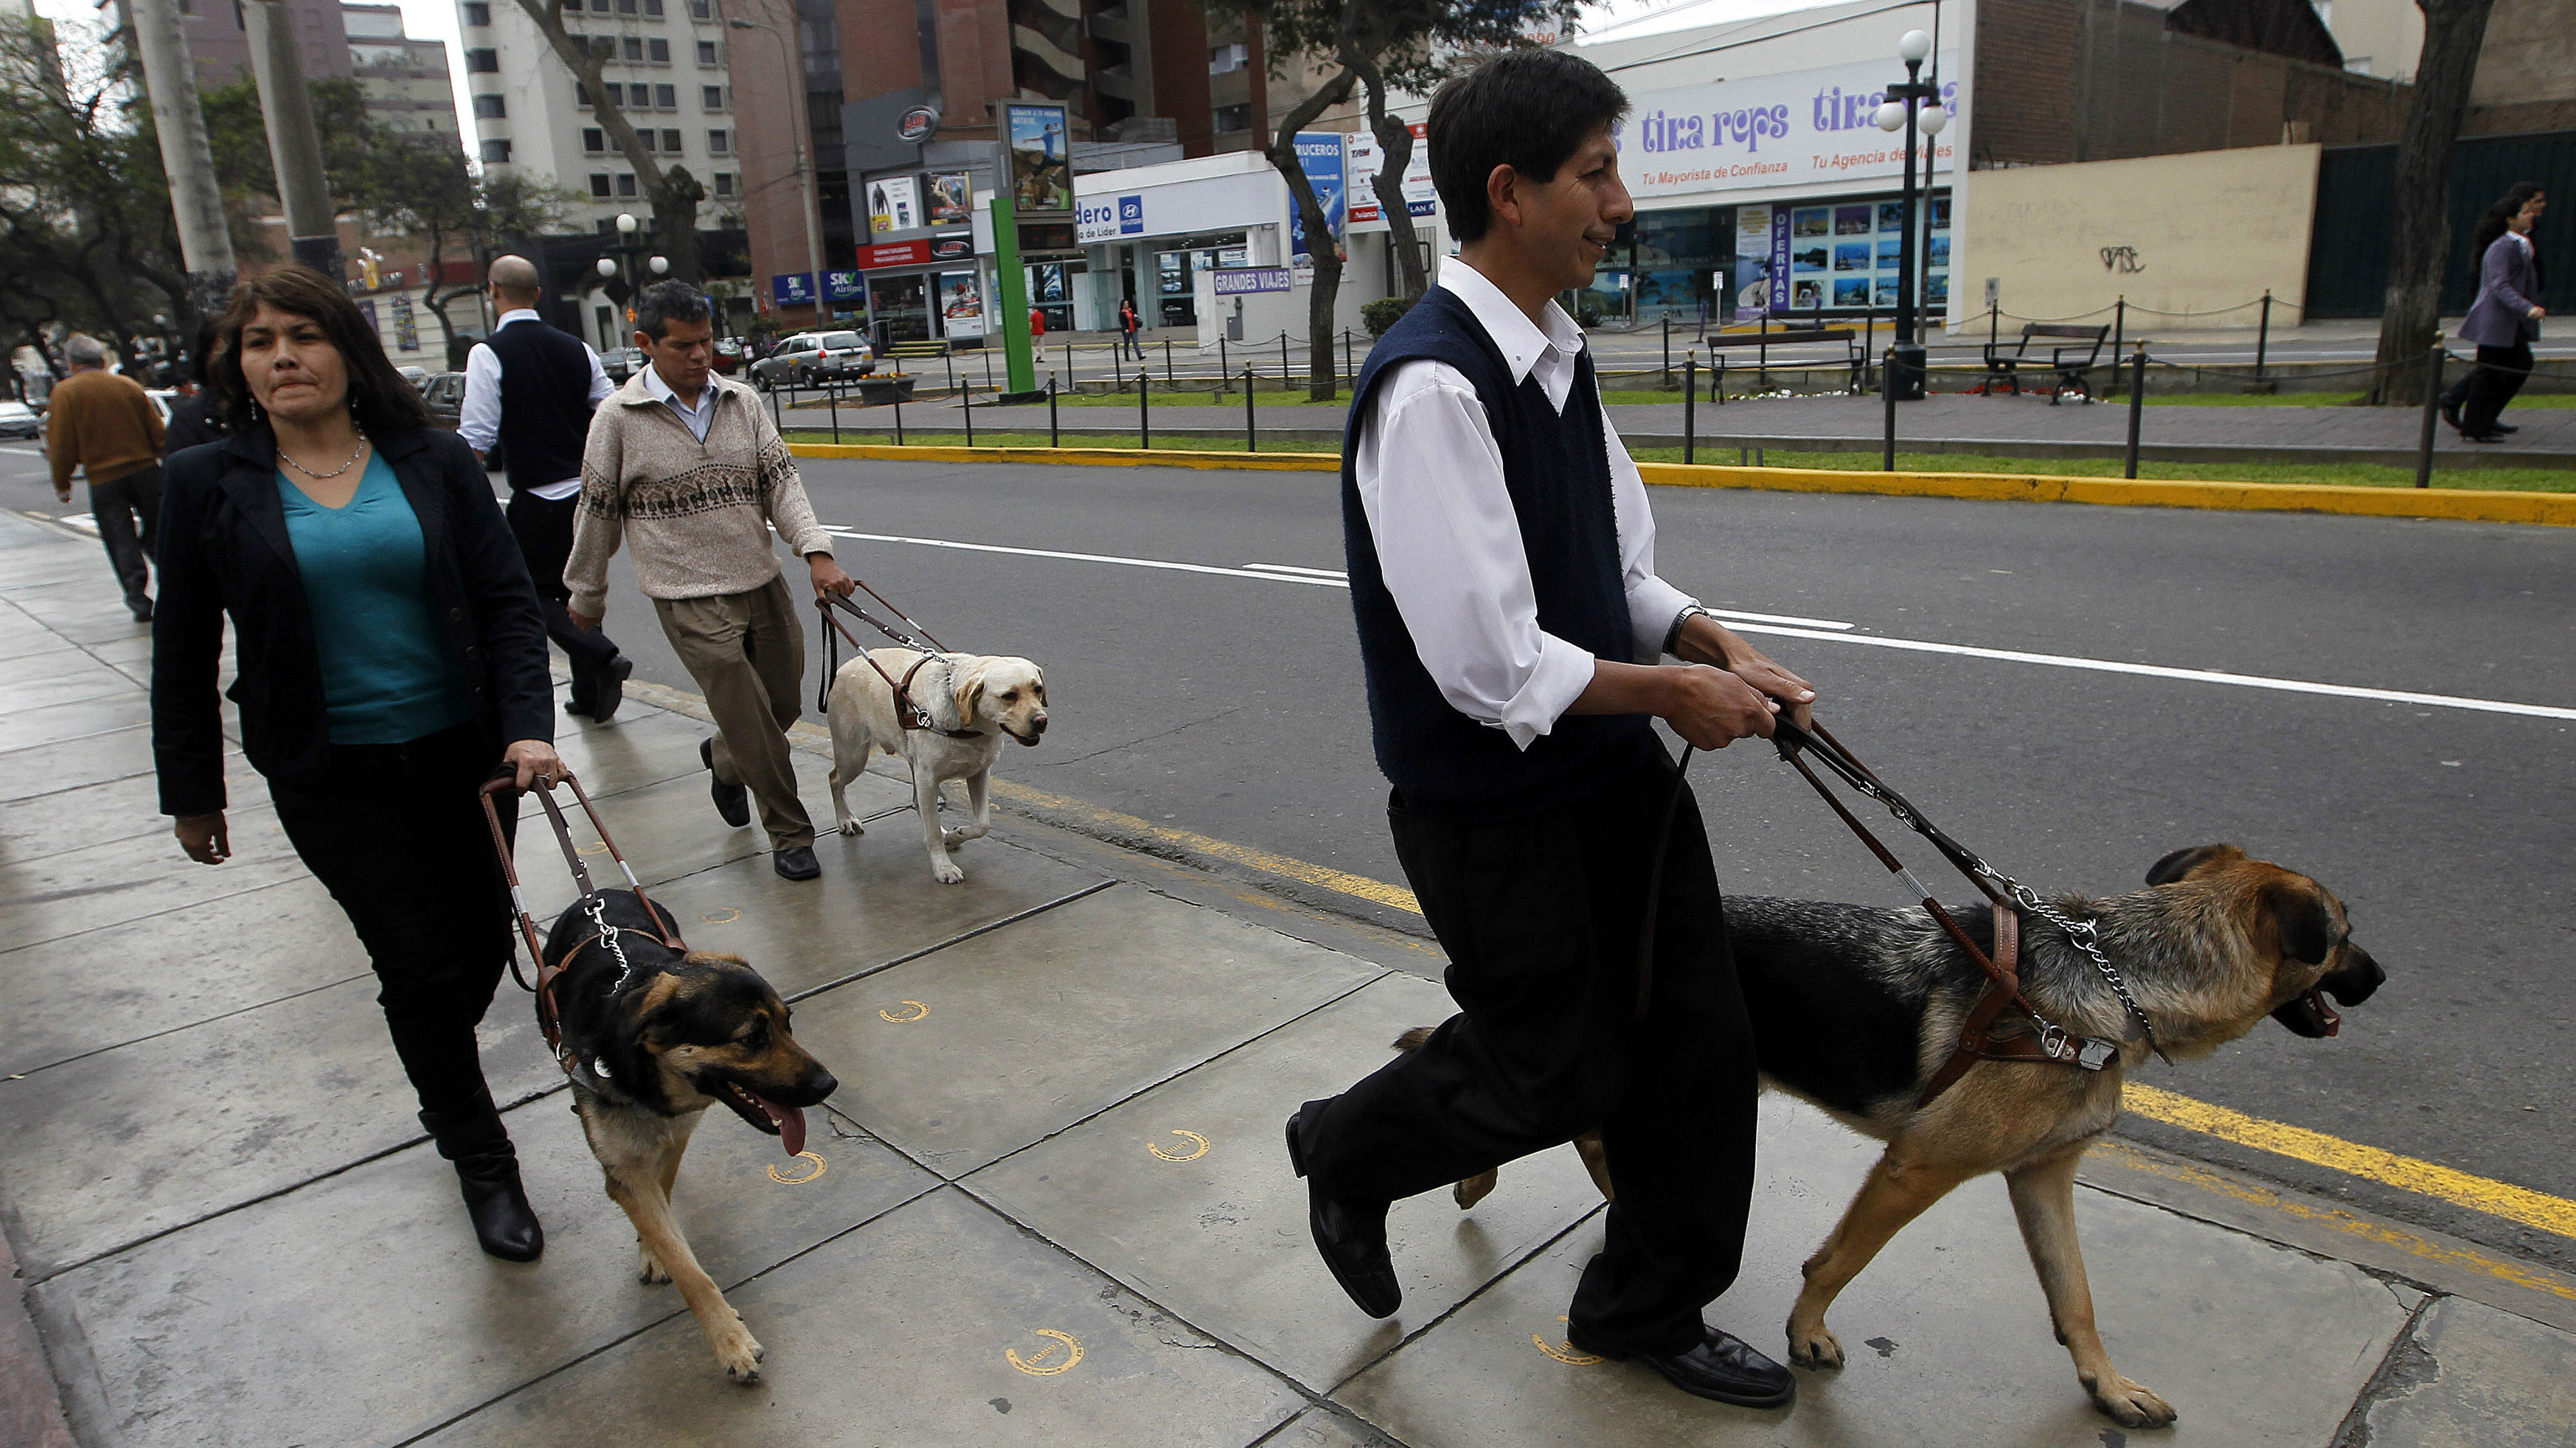 Marcos Segura (front), Jane Cosar and Juan Perez (back) and their guide dogs Ozzy, Cubbe and Isac (respectively) walk at a street in Lima October 6, 2011. Cosar is a blind lawyer and former congressional candidate who fights for the rights of blind people using guide dogs in Peru, where shops, banks, buses and others do not allow the blind to enter with their guide dogs. In Peru, there are three blind users of guide dogs, that were donated by Leader Dogs for the Blind program, and they hope that through lawsuits, they will be able to gain more rights and freedom to use public transport.